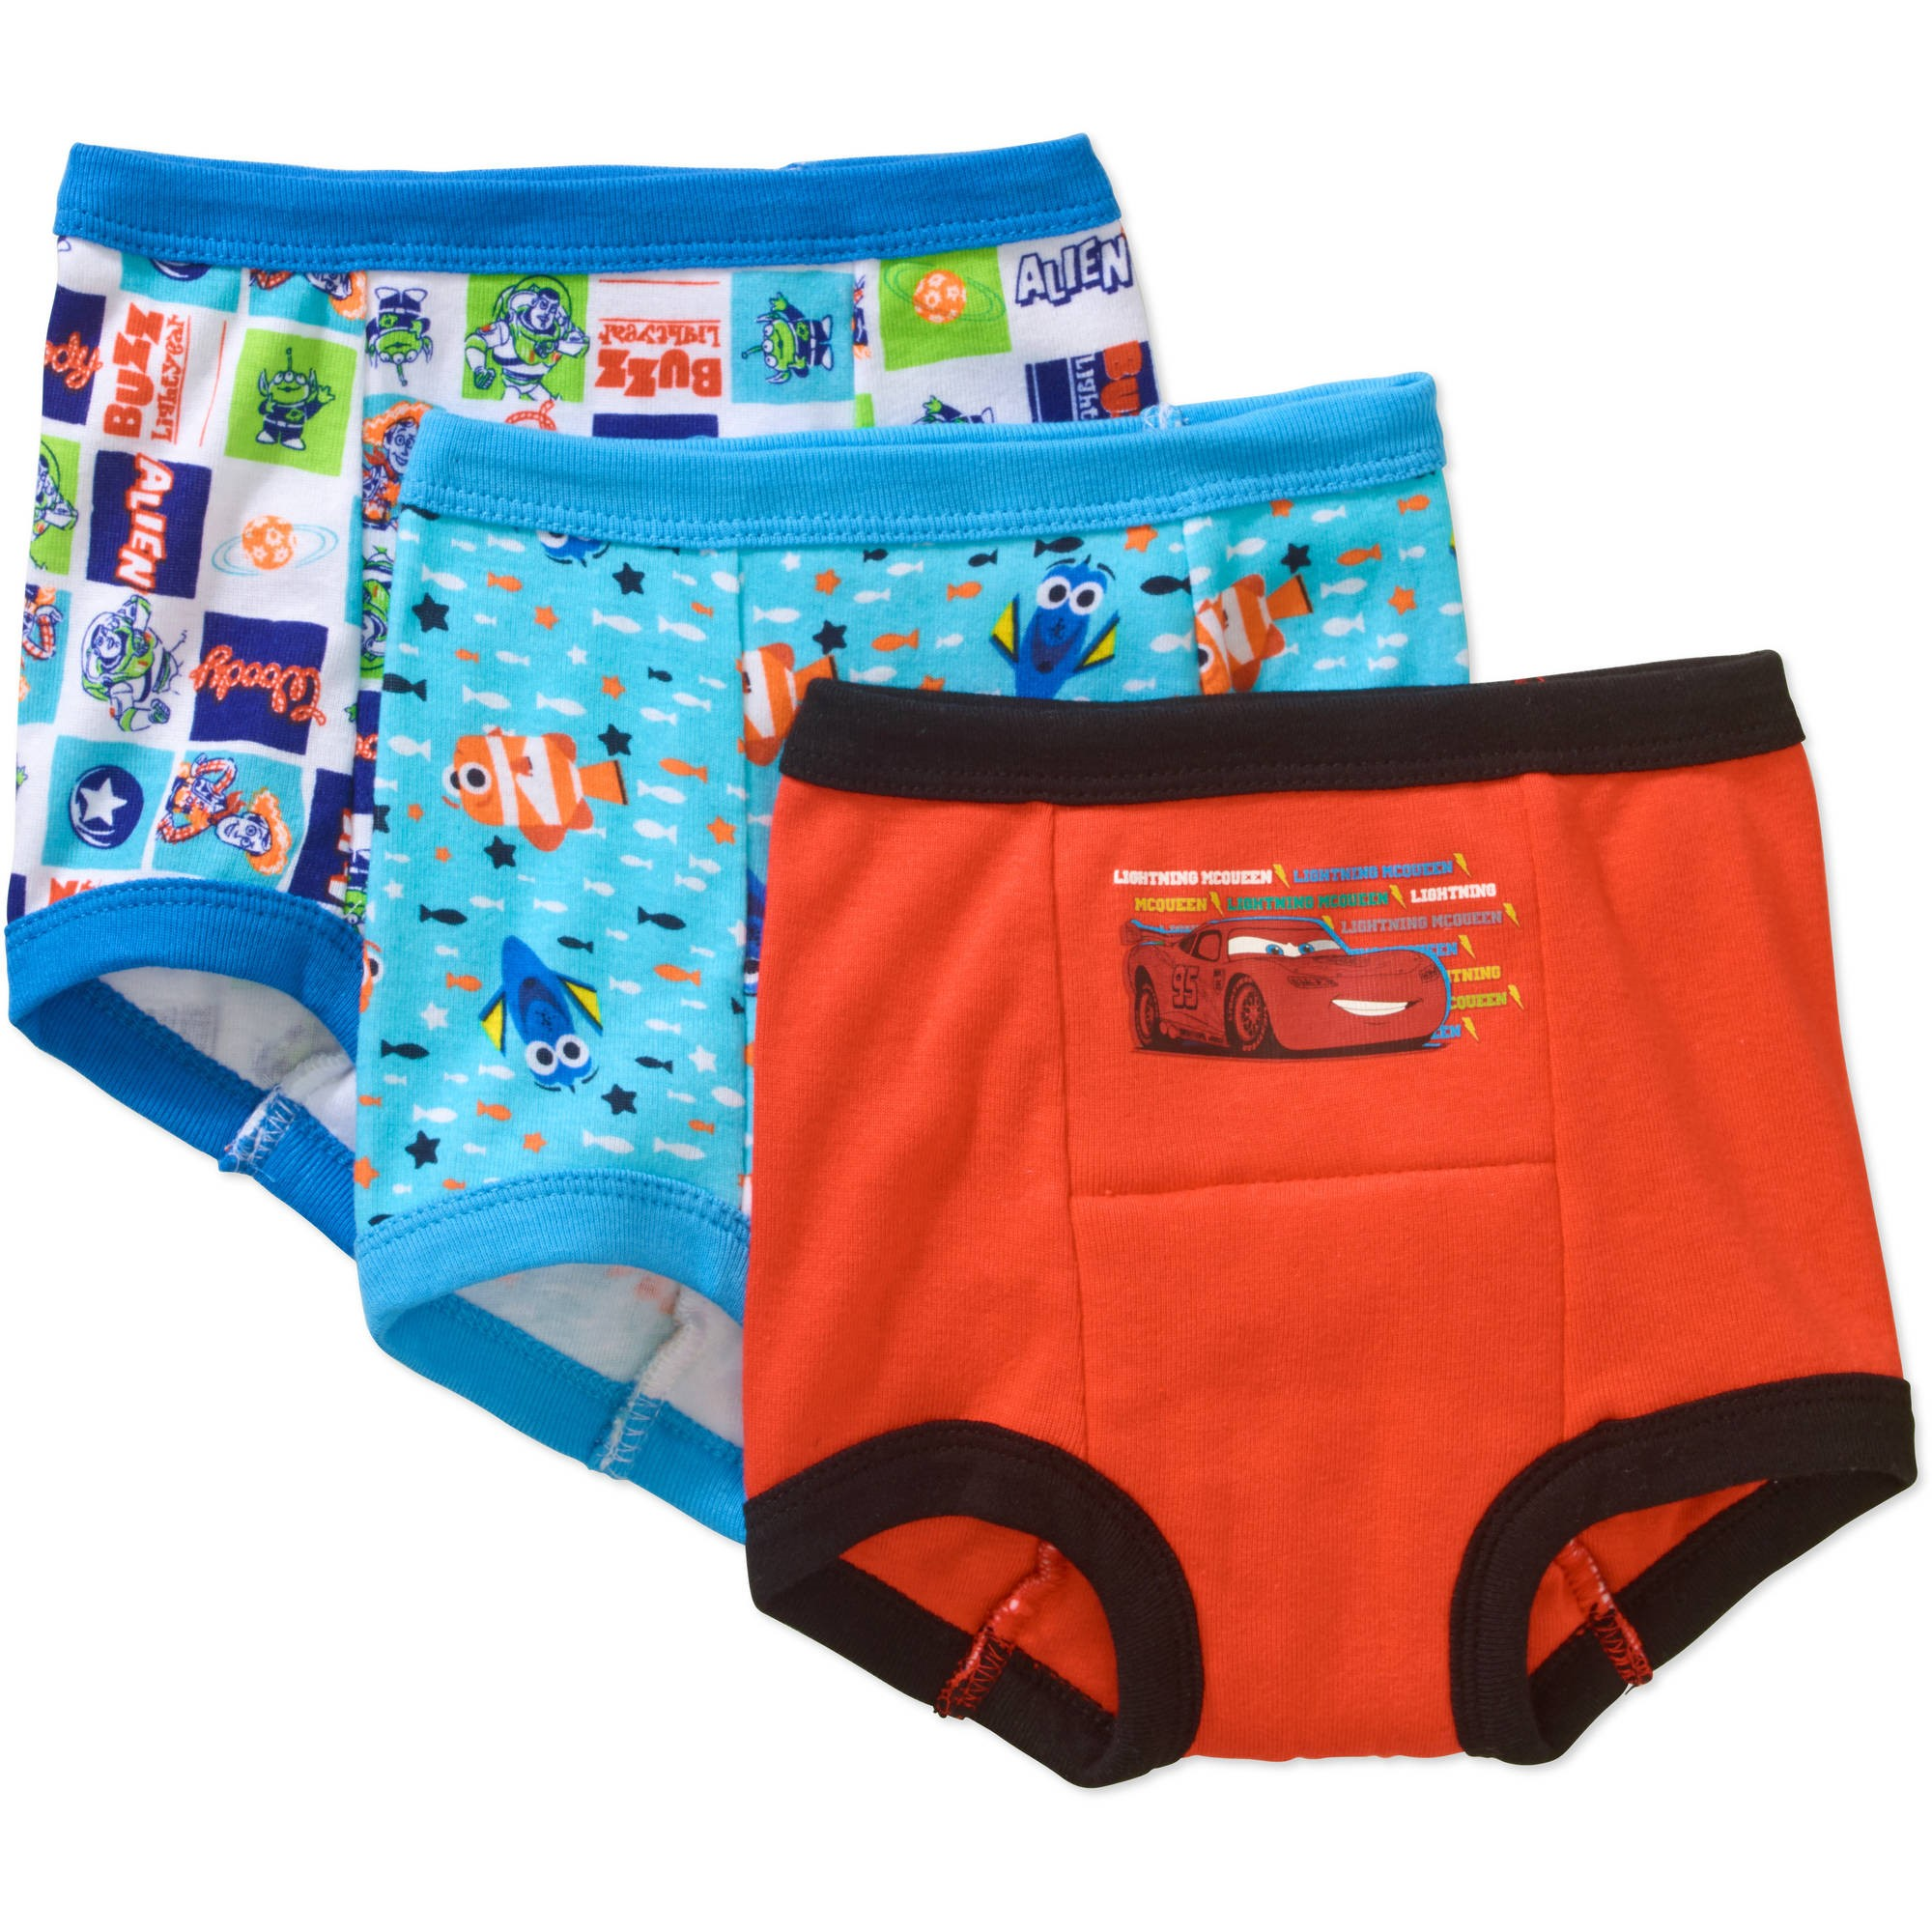 Pixar Toddler Boys' Training Pants, 2T, 3 Pack